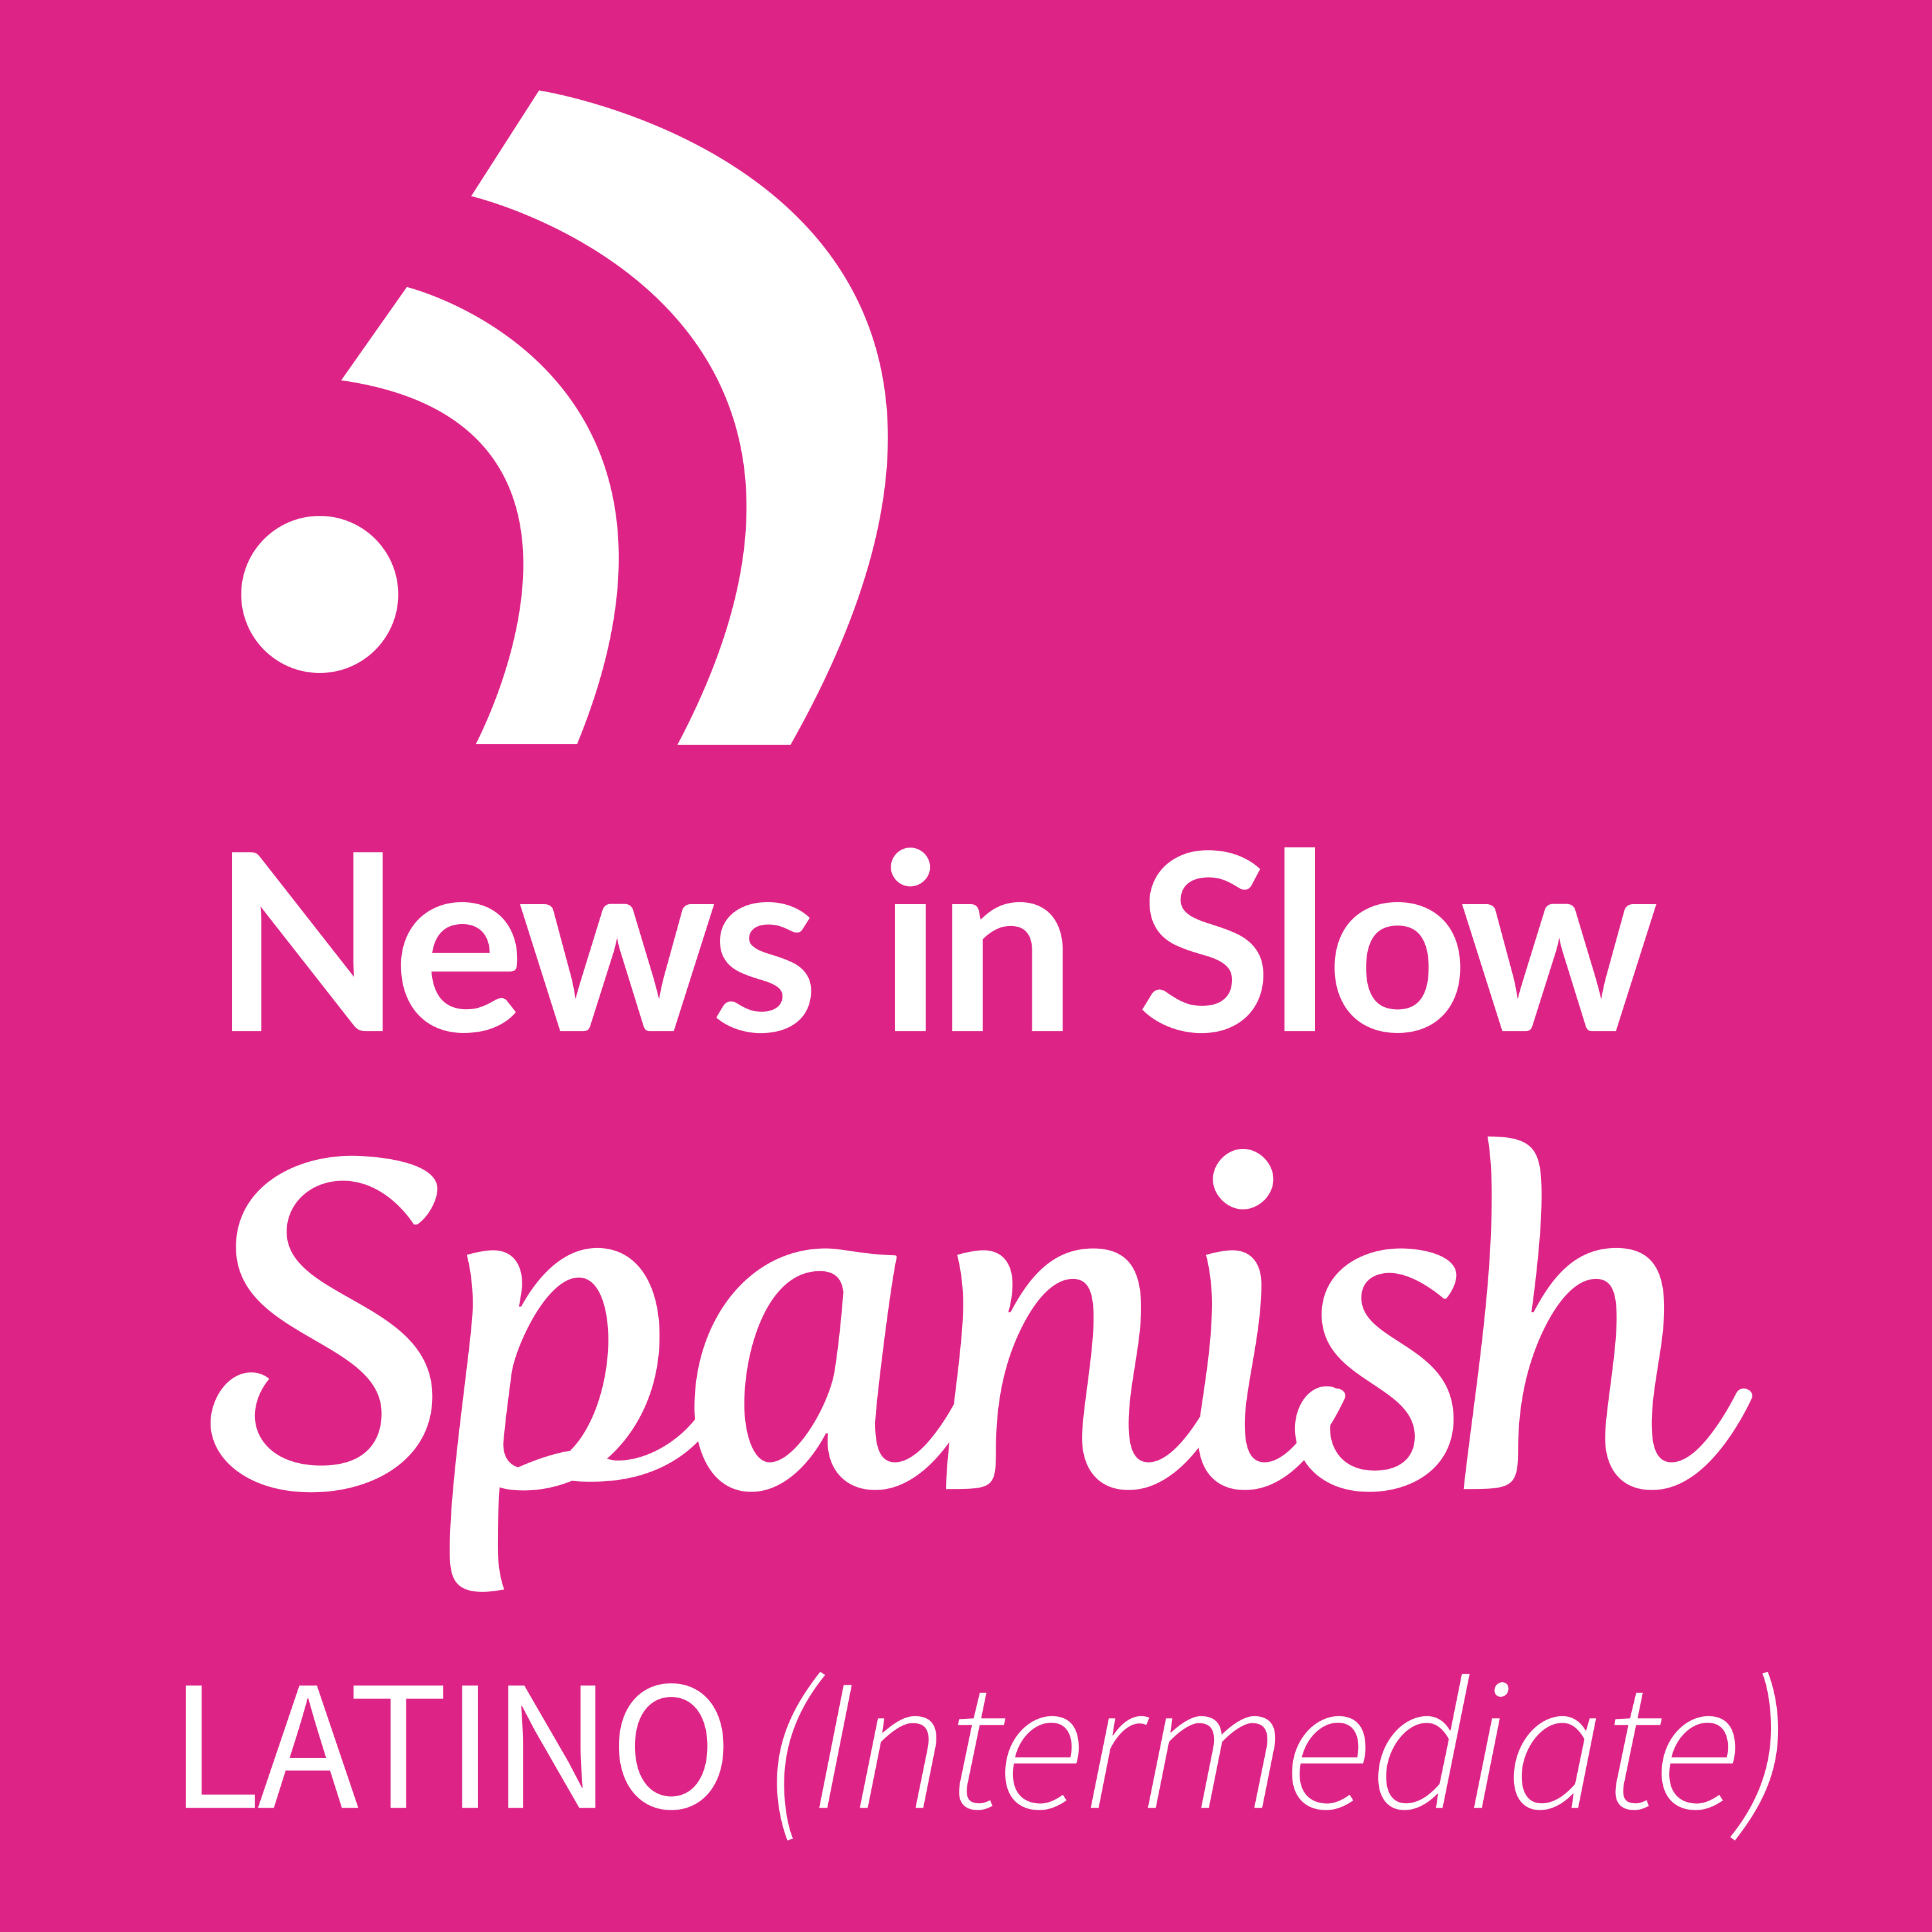 News in Slow Spanish Latino - # 142 - Spanish grammar, news and expressions